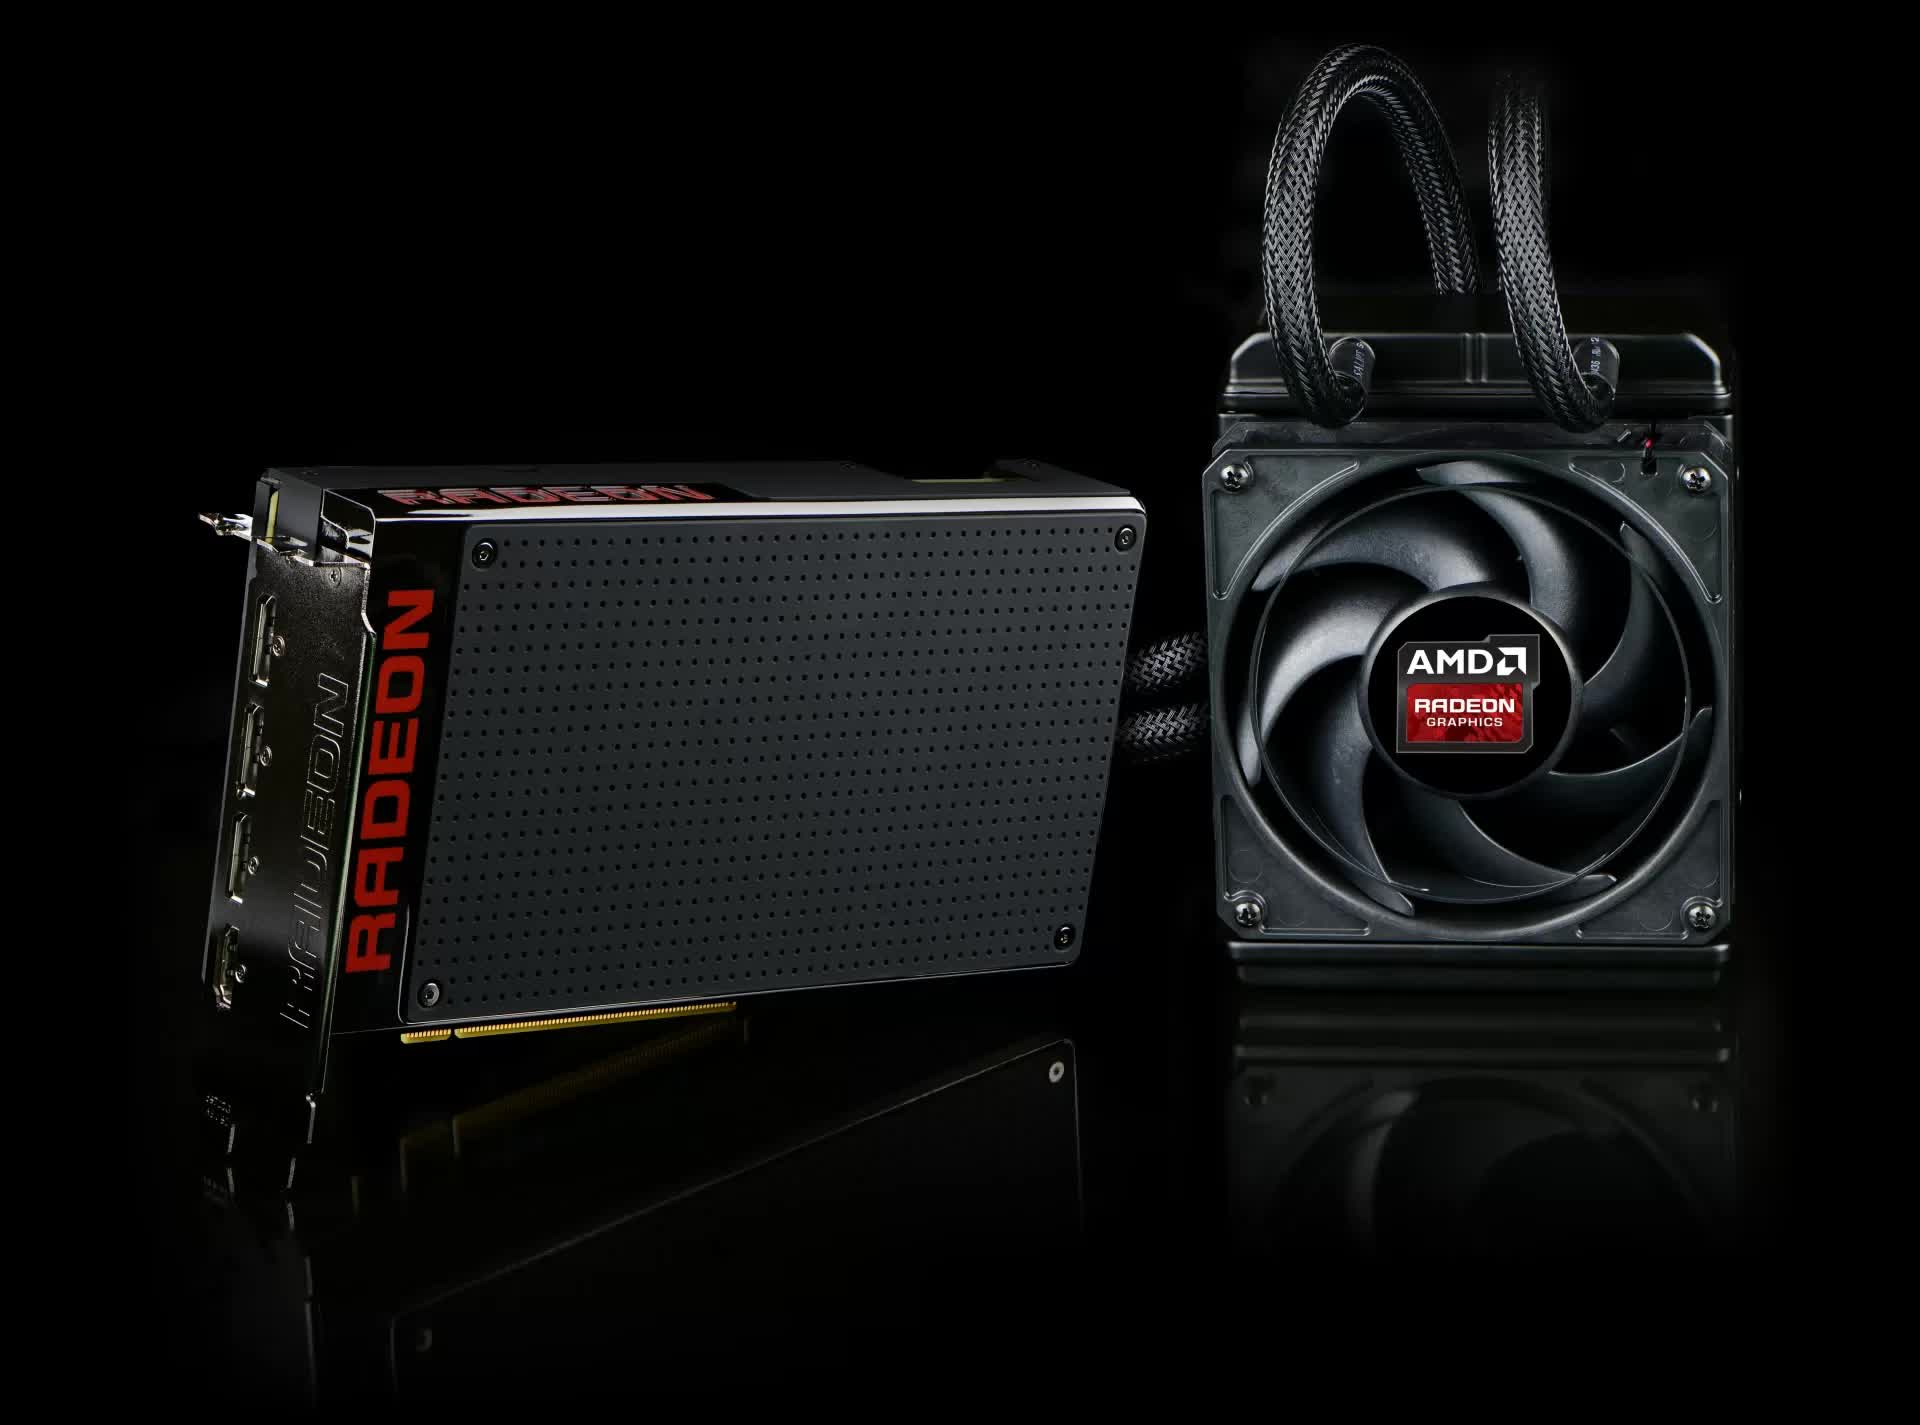 AMD is halting support for numerous GPU series, ranging from the HD 7000 to the Fury series